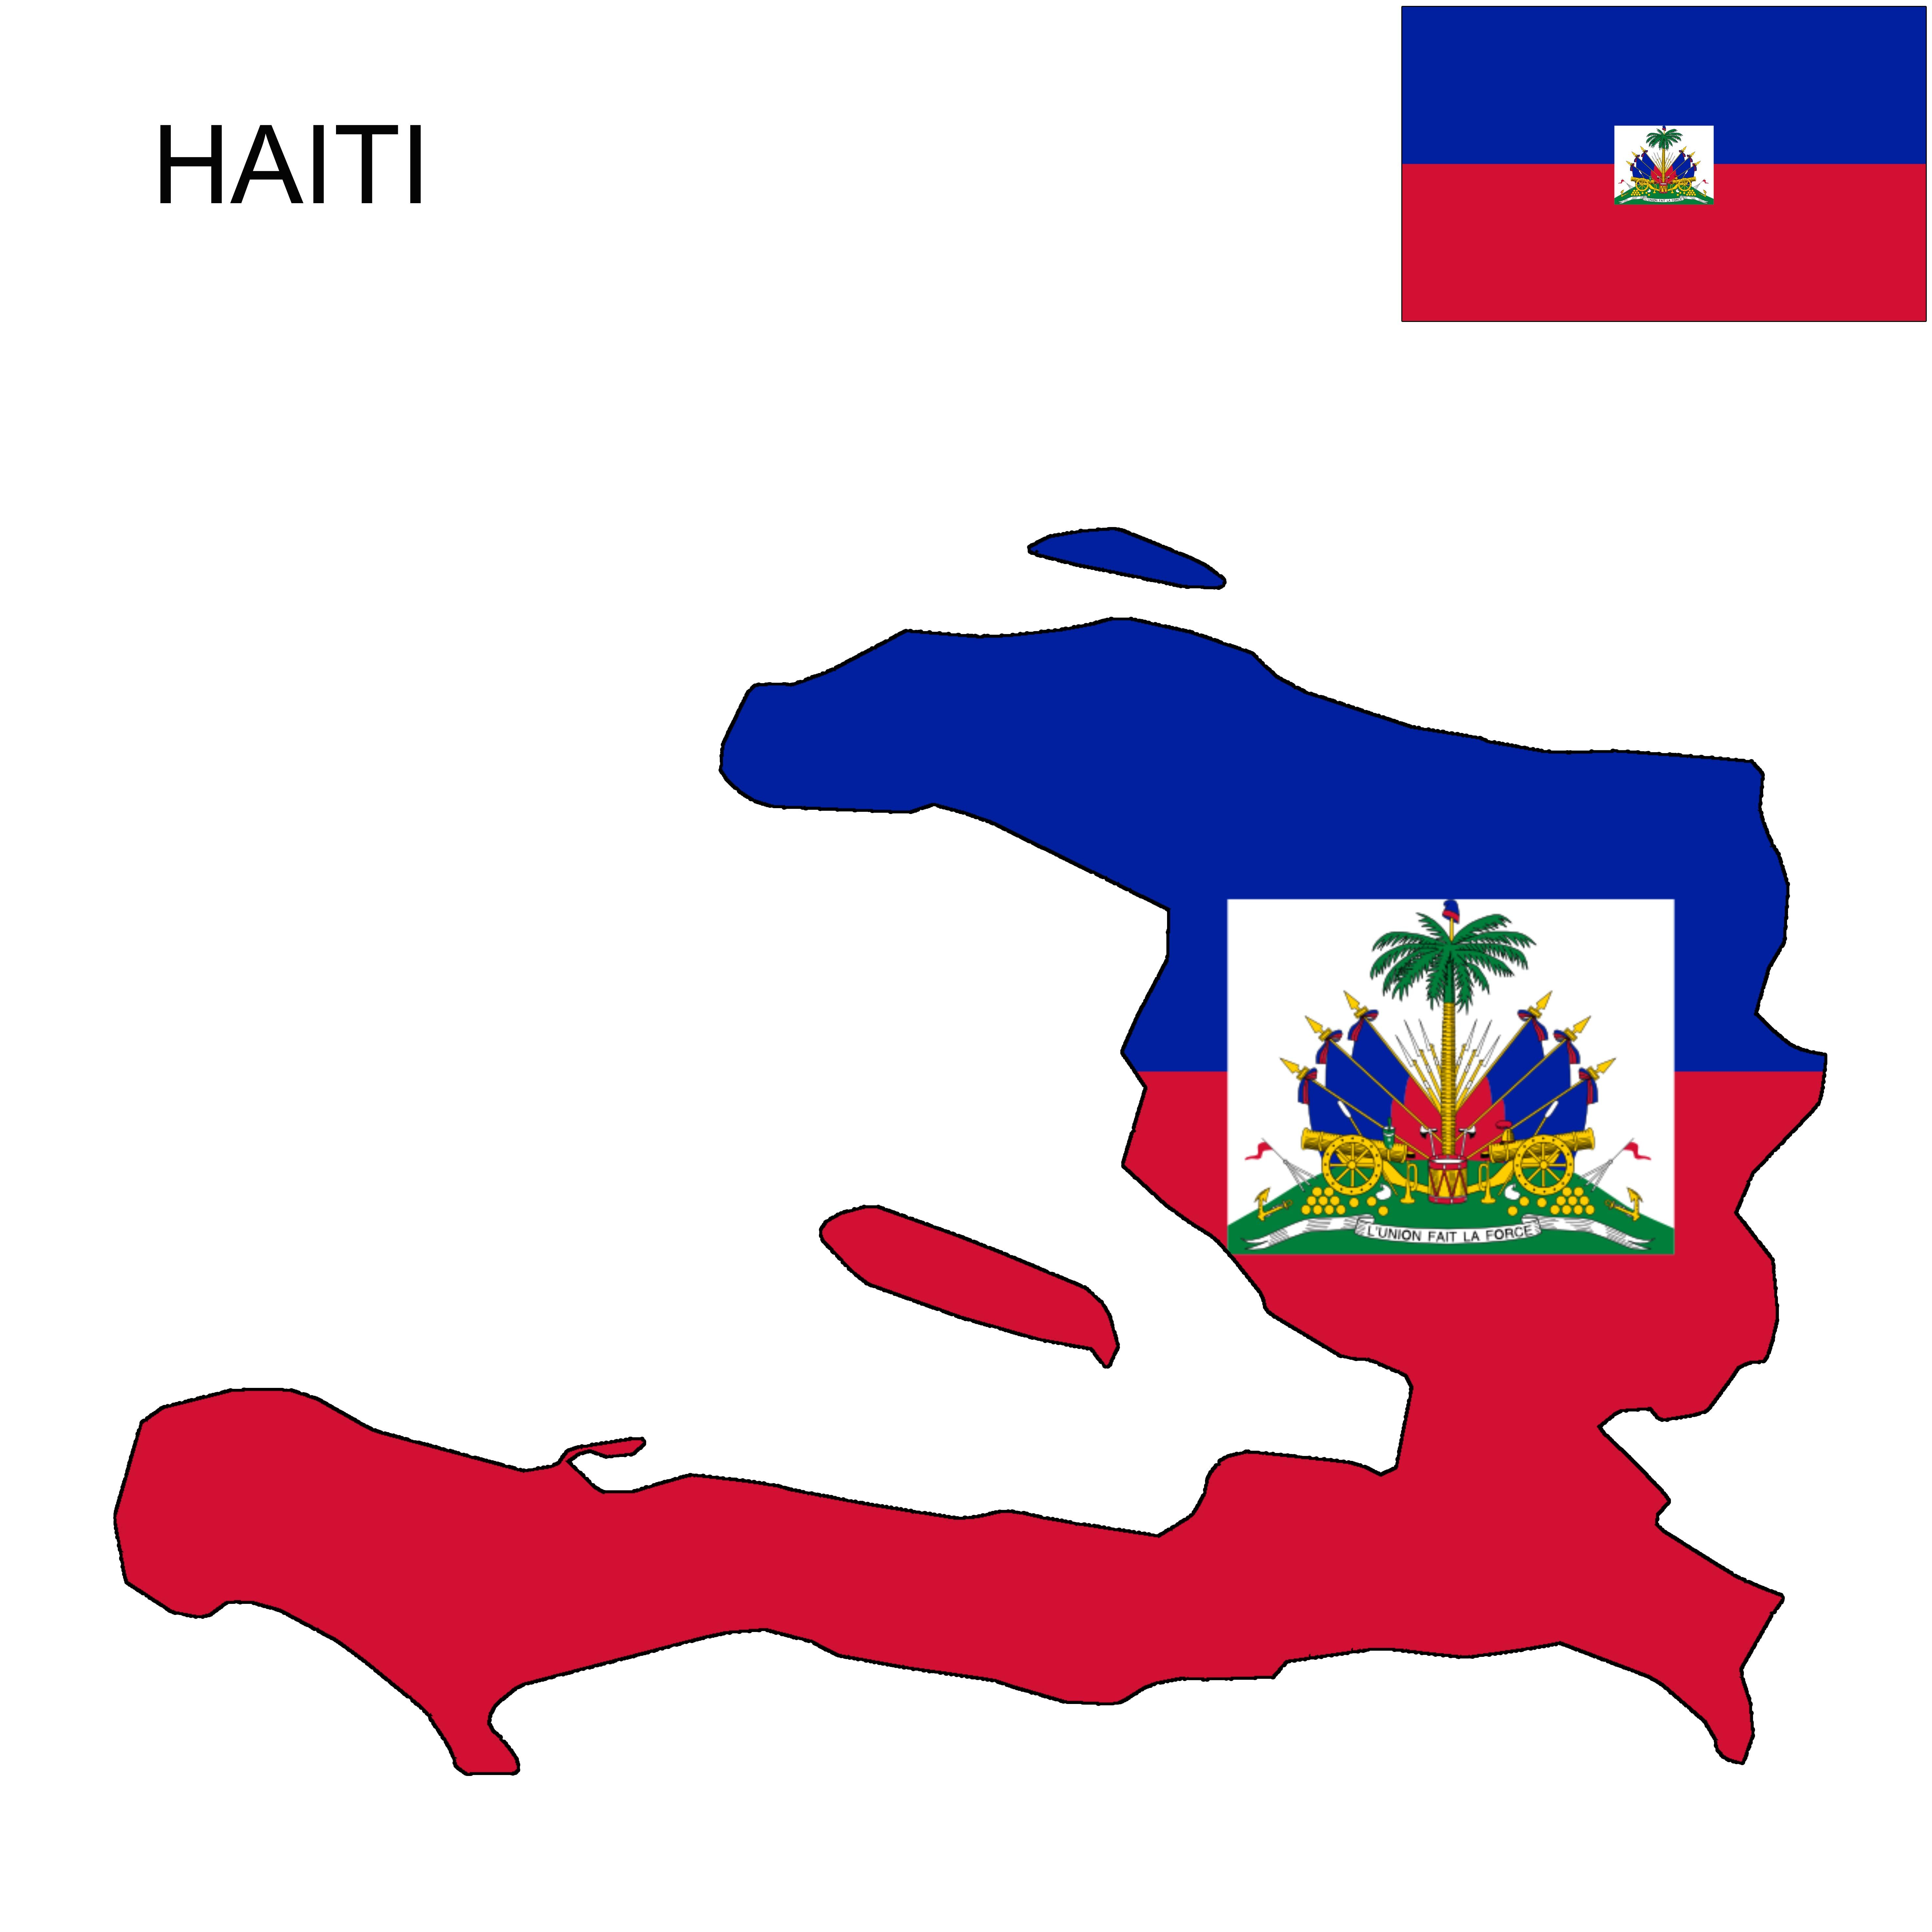 Flag Map Of Haiti Western Part Of The Caribbean Island That Also Contains The Dominican Republic In 2020 Haiti Flag Flag Map Of Haiti